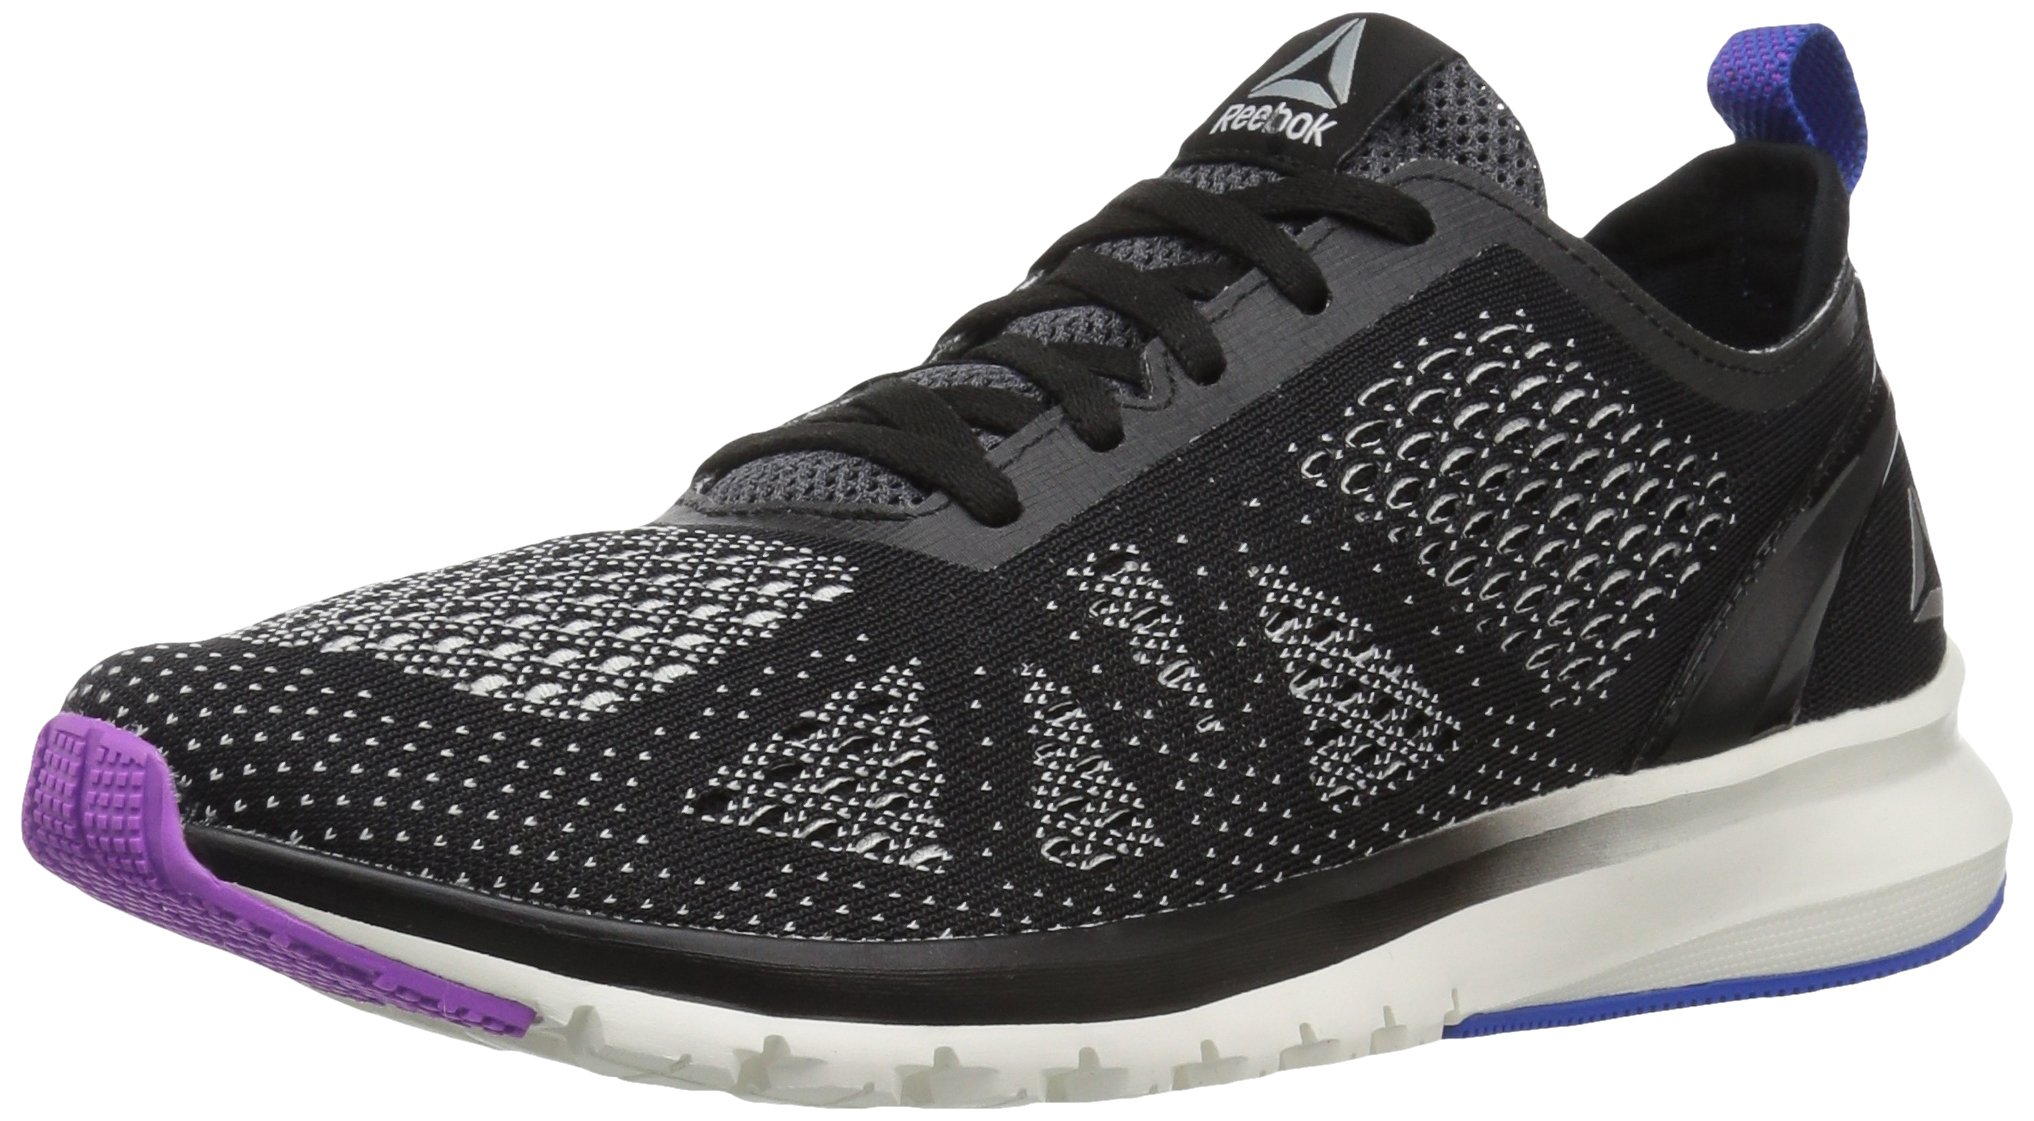 Reebok Women's Print Smooth Clip Ultk Track Shoe, black/chalk/vicious violet/vital blue, 10 M US